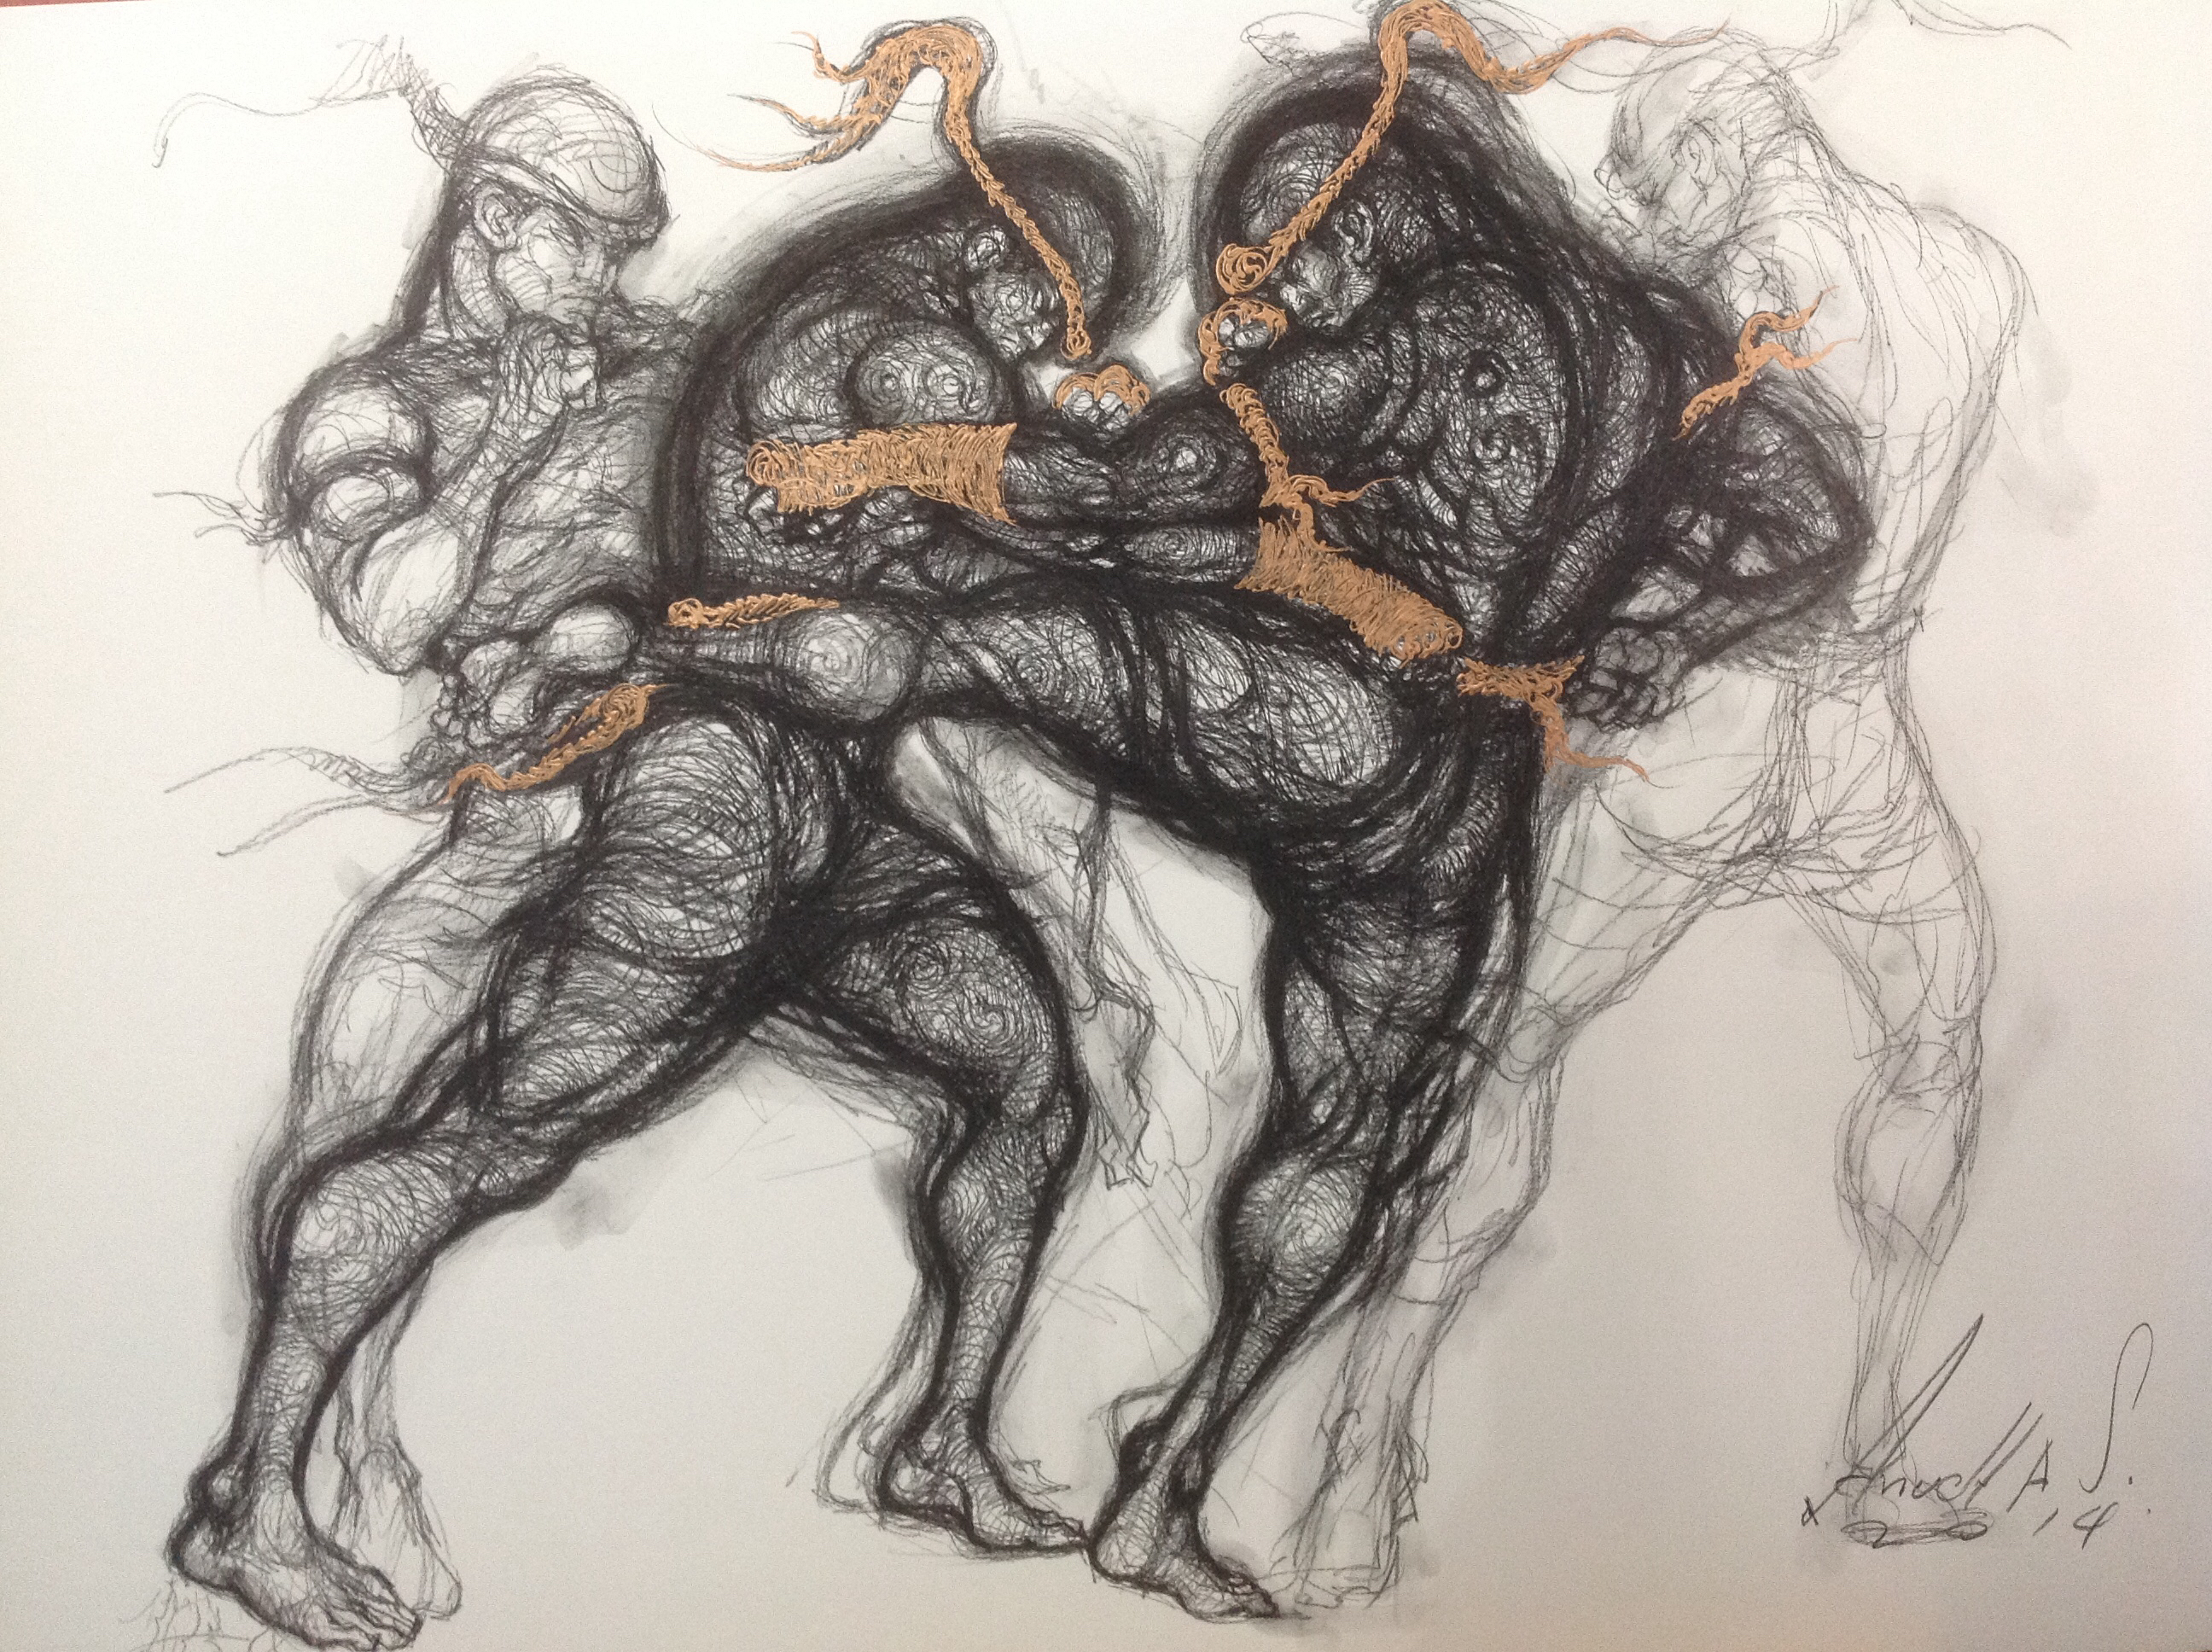 2592x1936 Muay Thai Fighting. Charcoal Pencil Drawing On Paper. Size 80x120